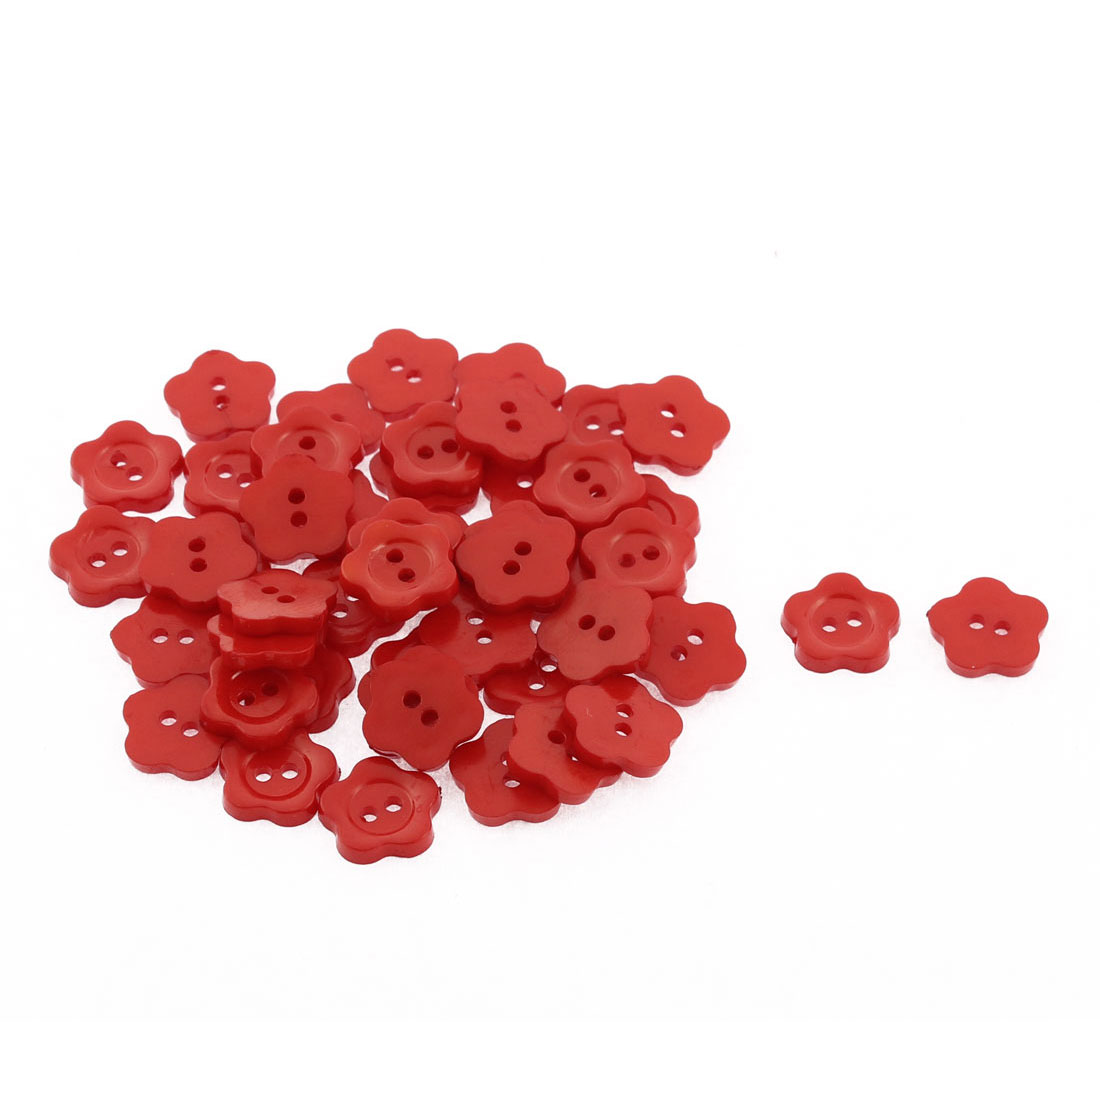 50Pcs 2 Holes 13mm Plastic Sewing Buttons Scrapbooking Red